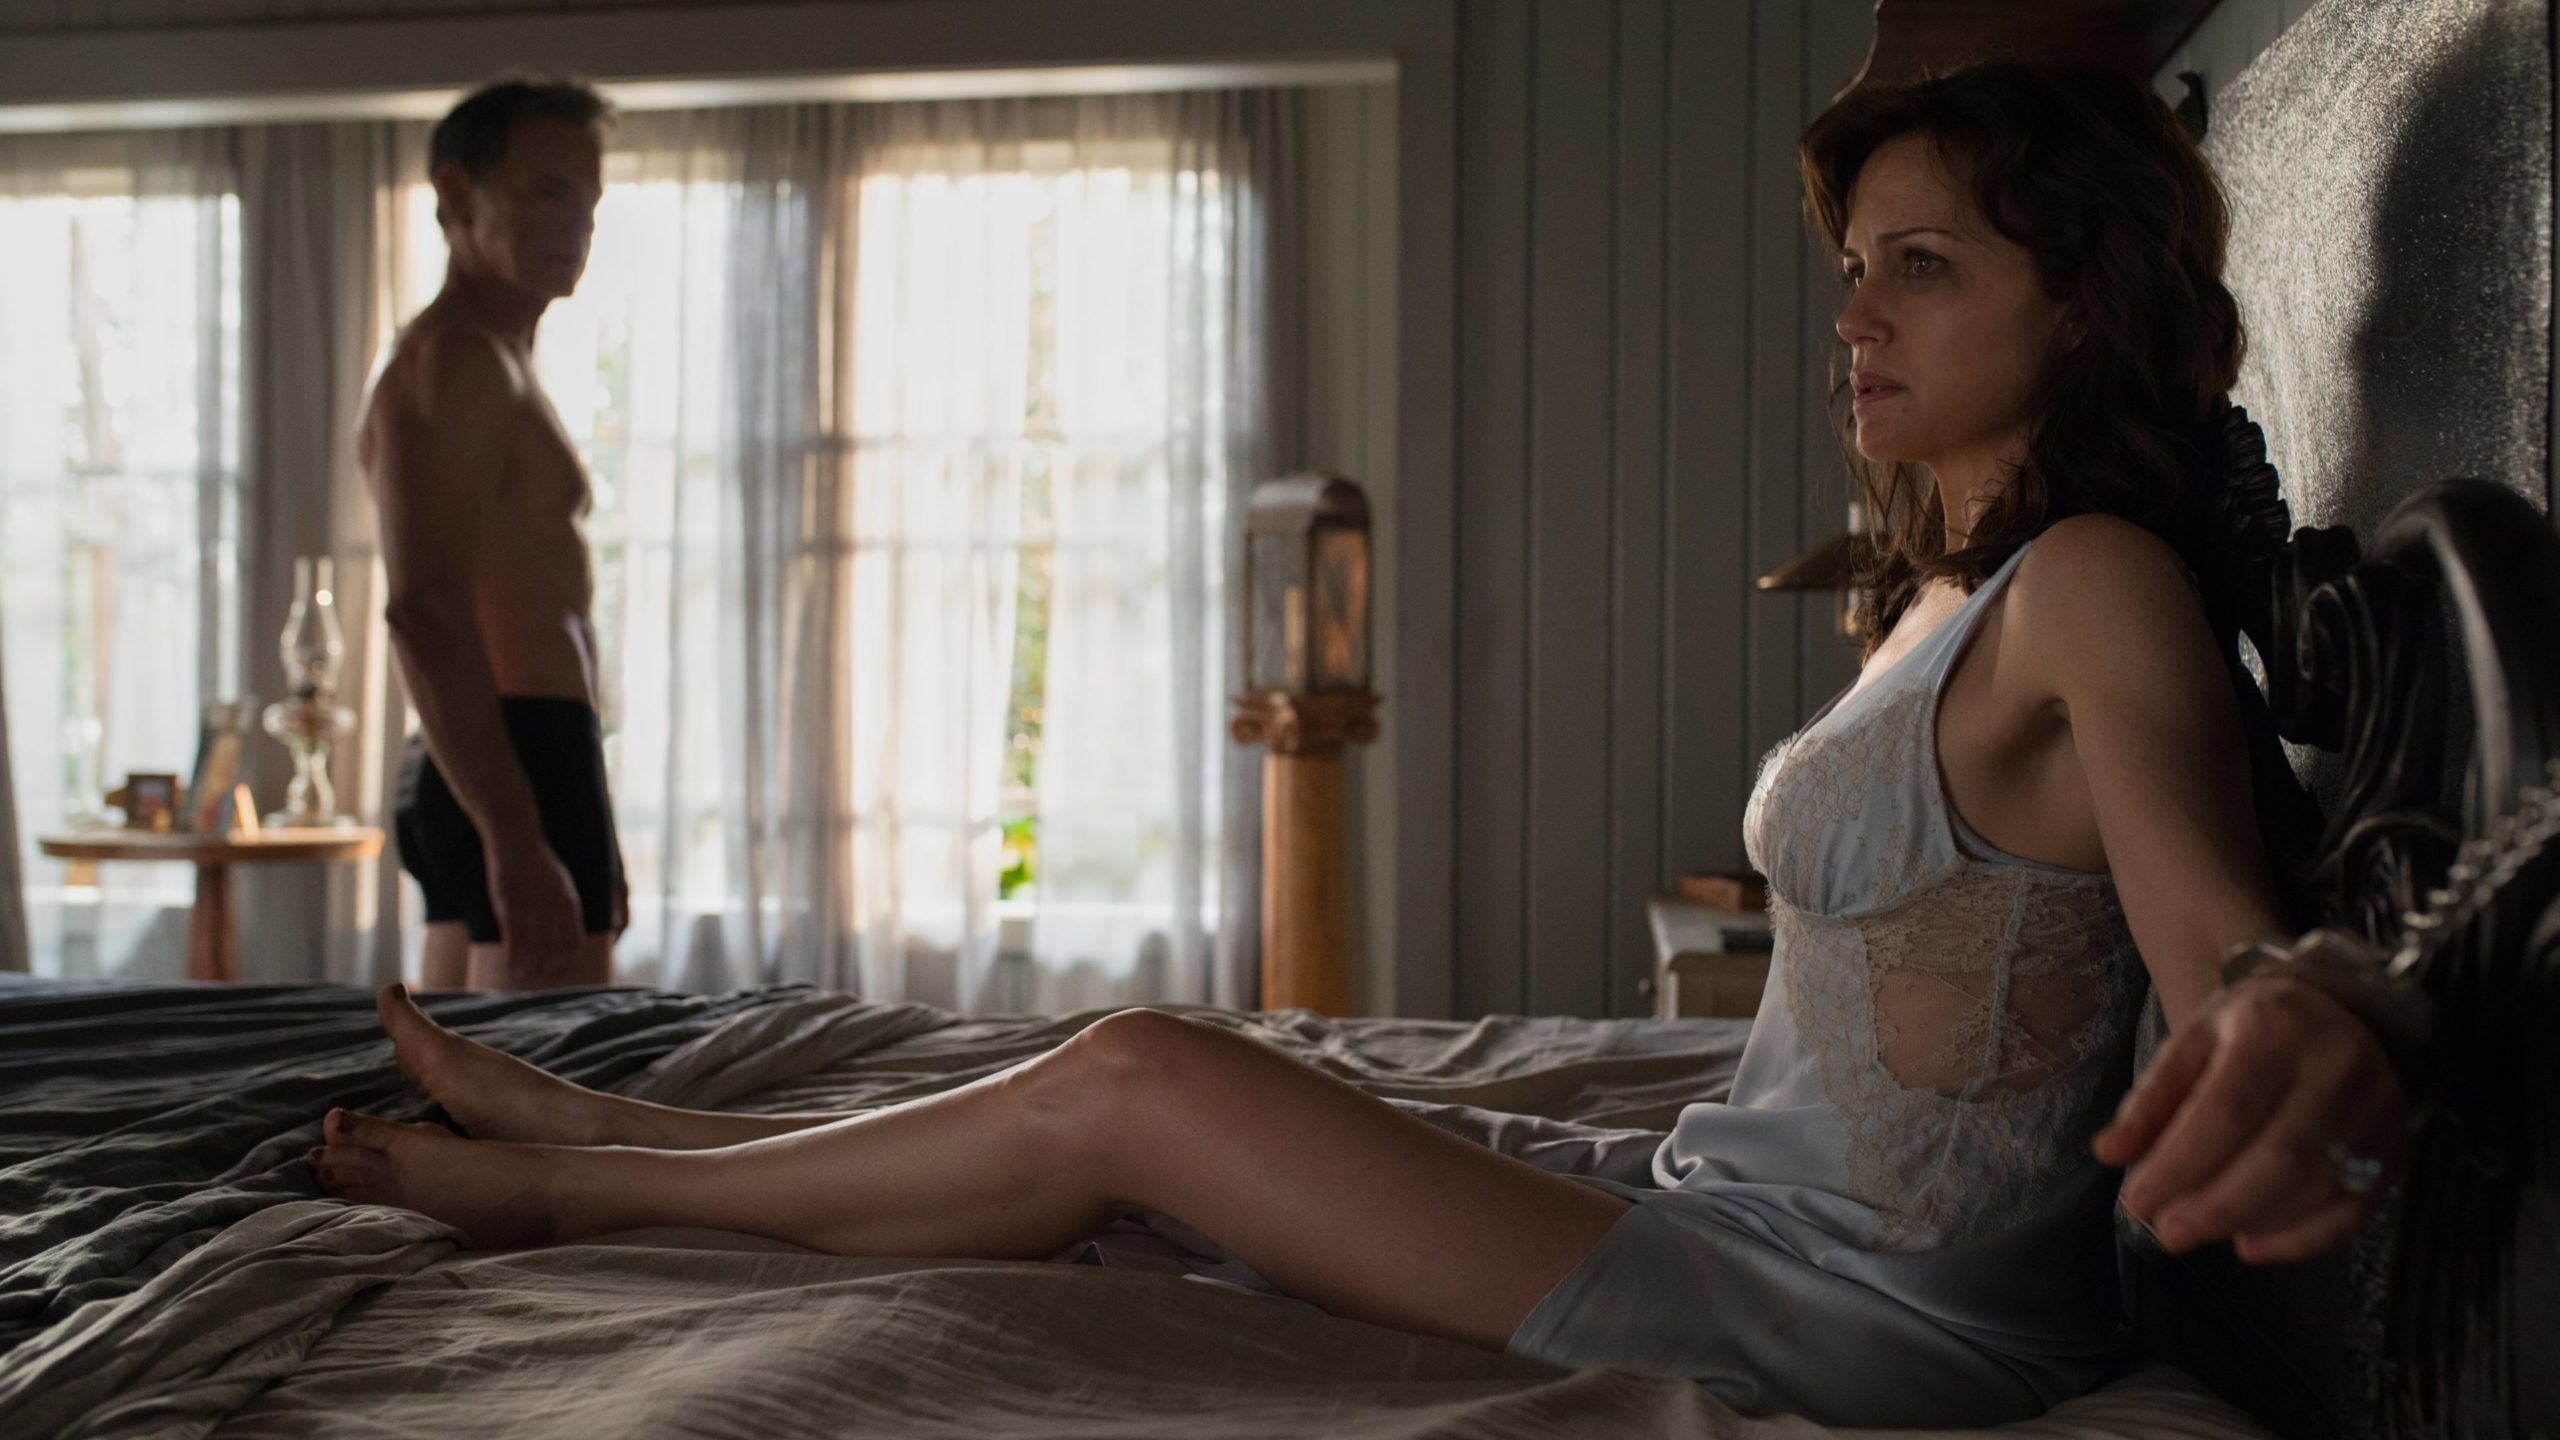 Geralds Game is one of the best horror movies from the past decade